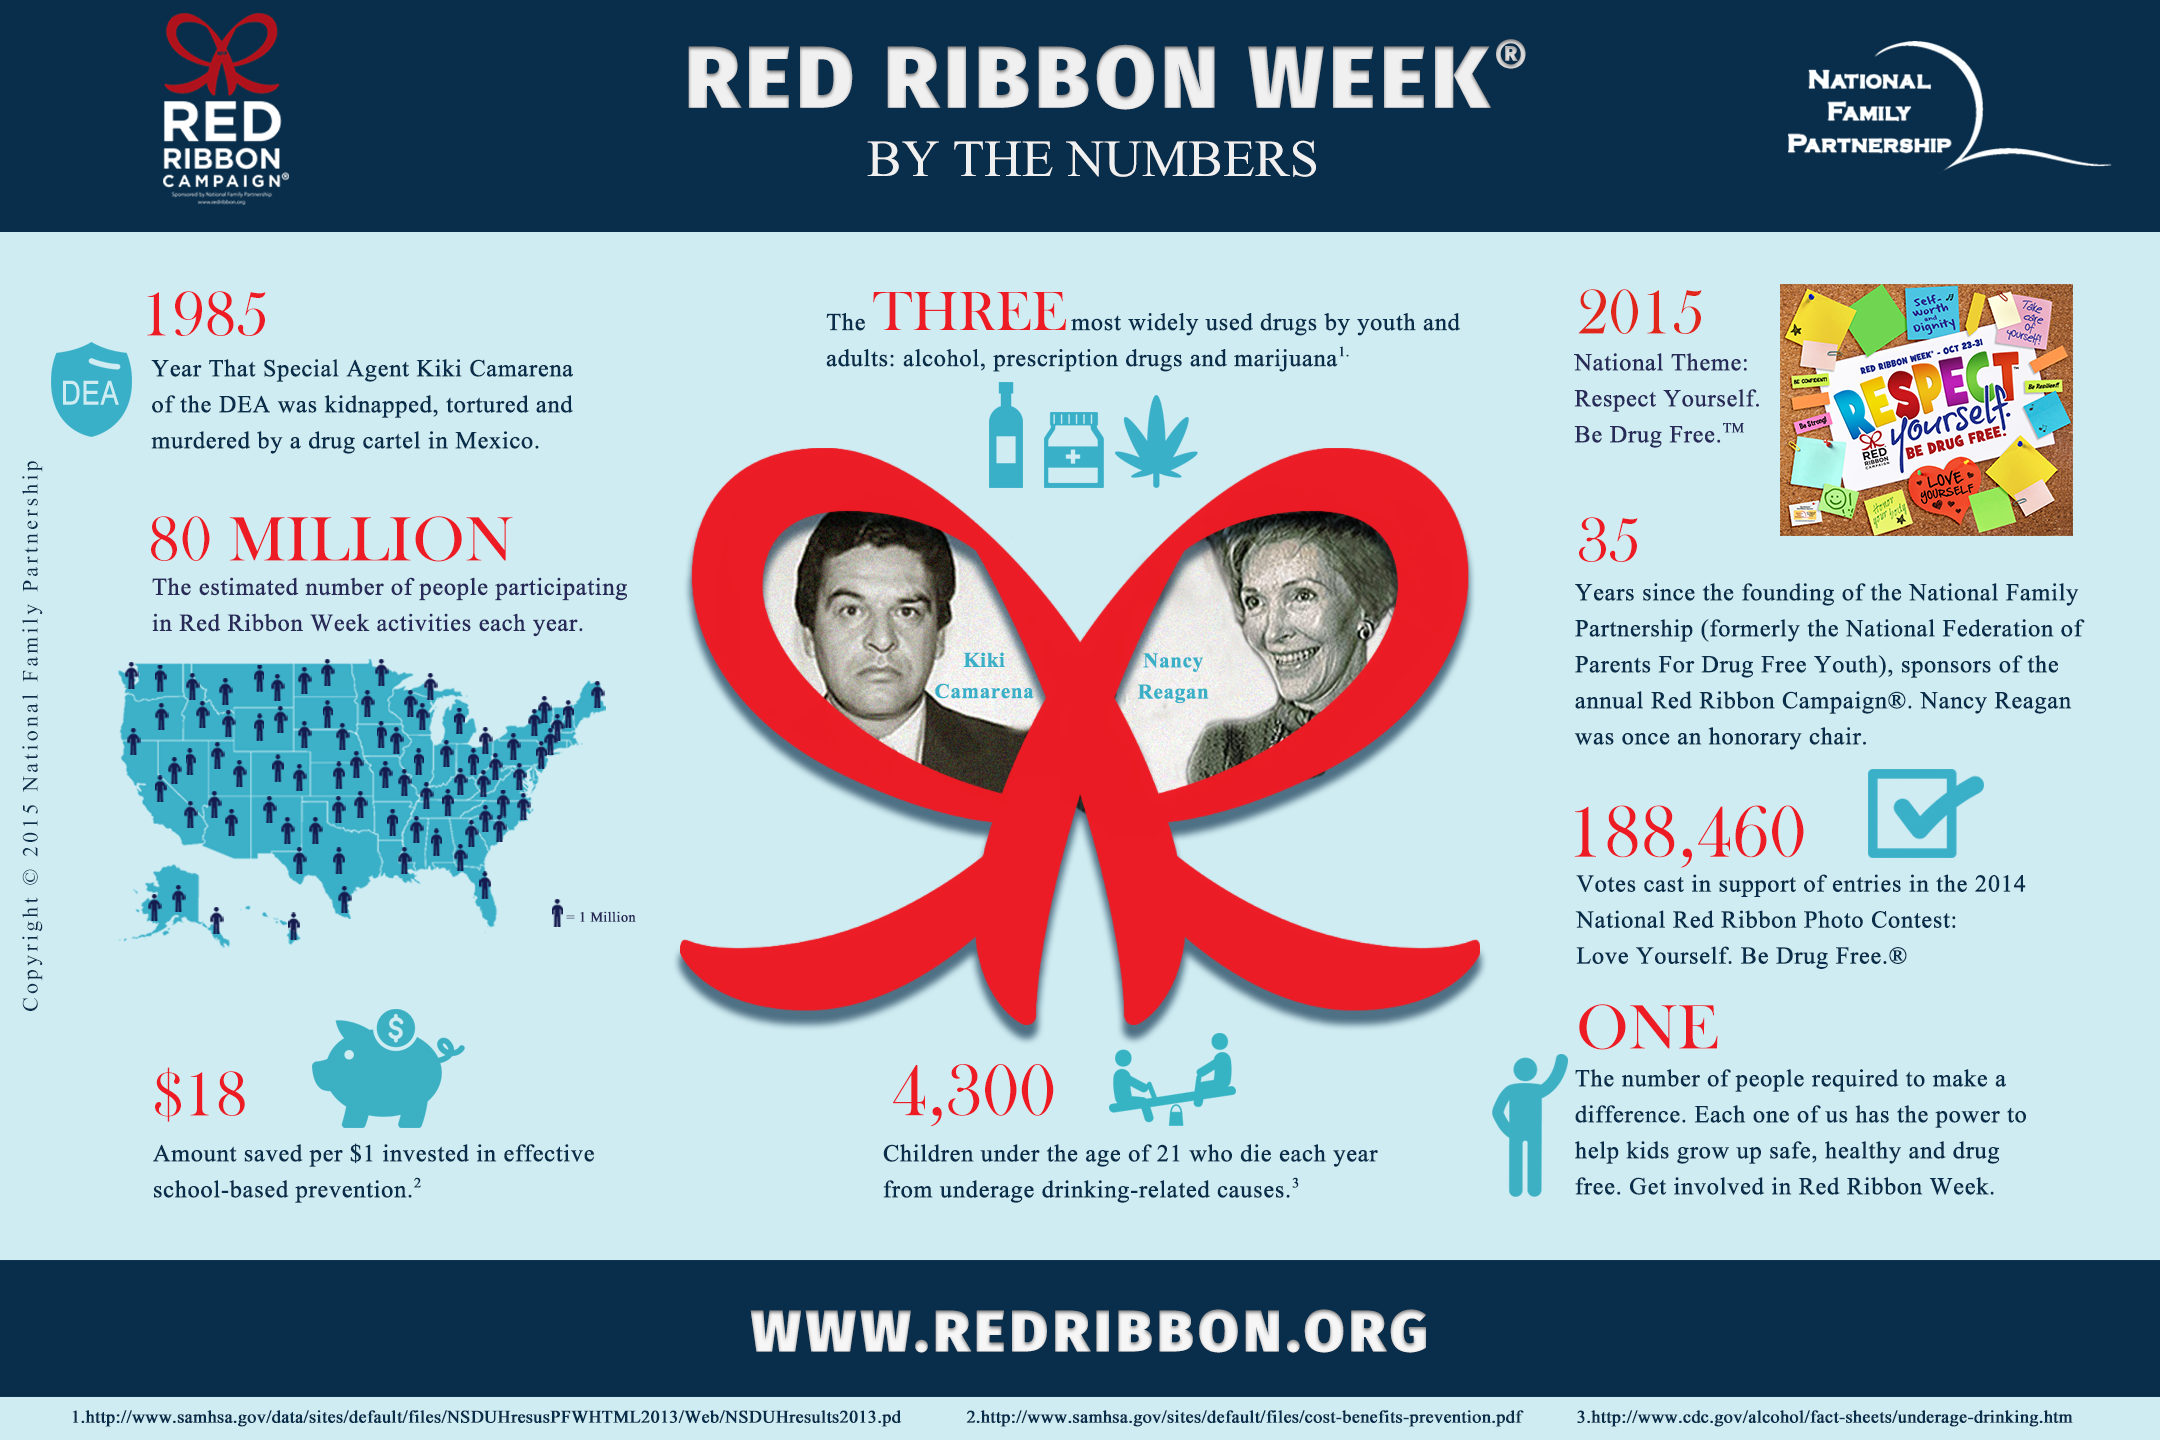 Red_Ribbon_Week_By_The_Numbers